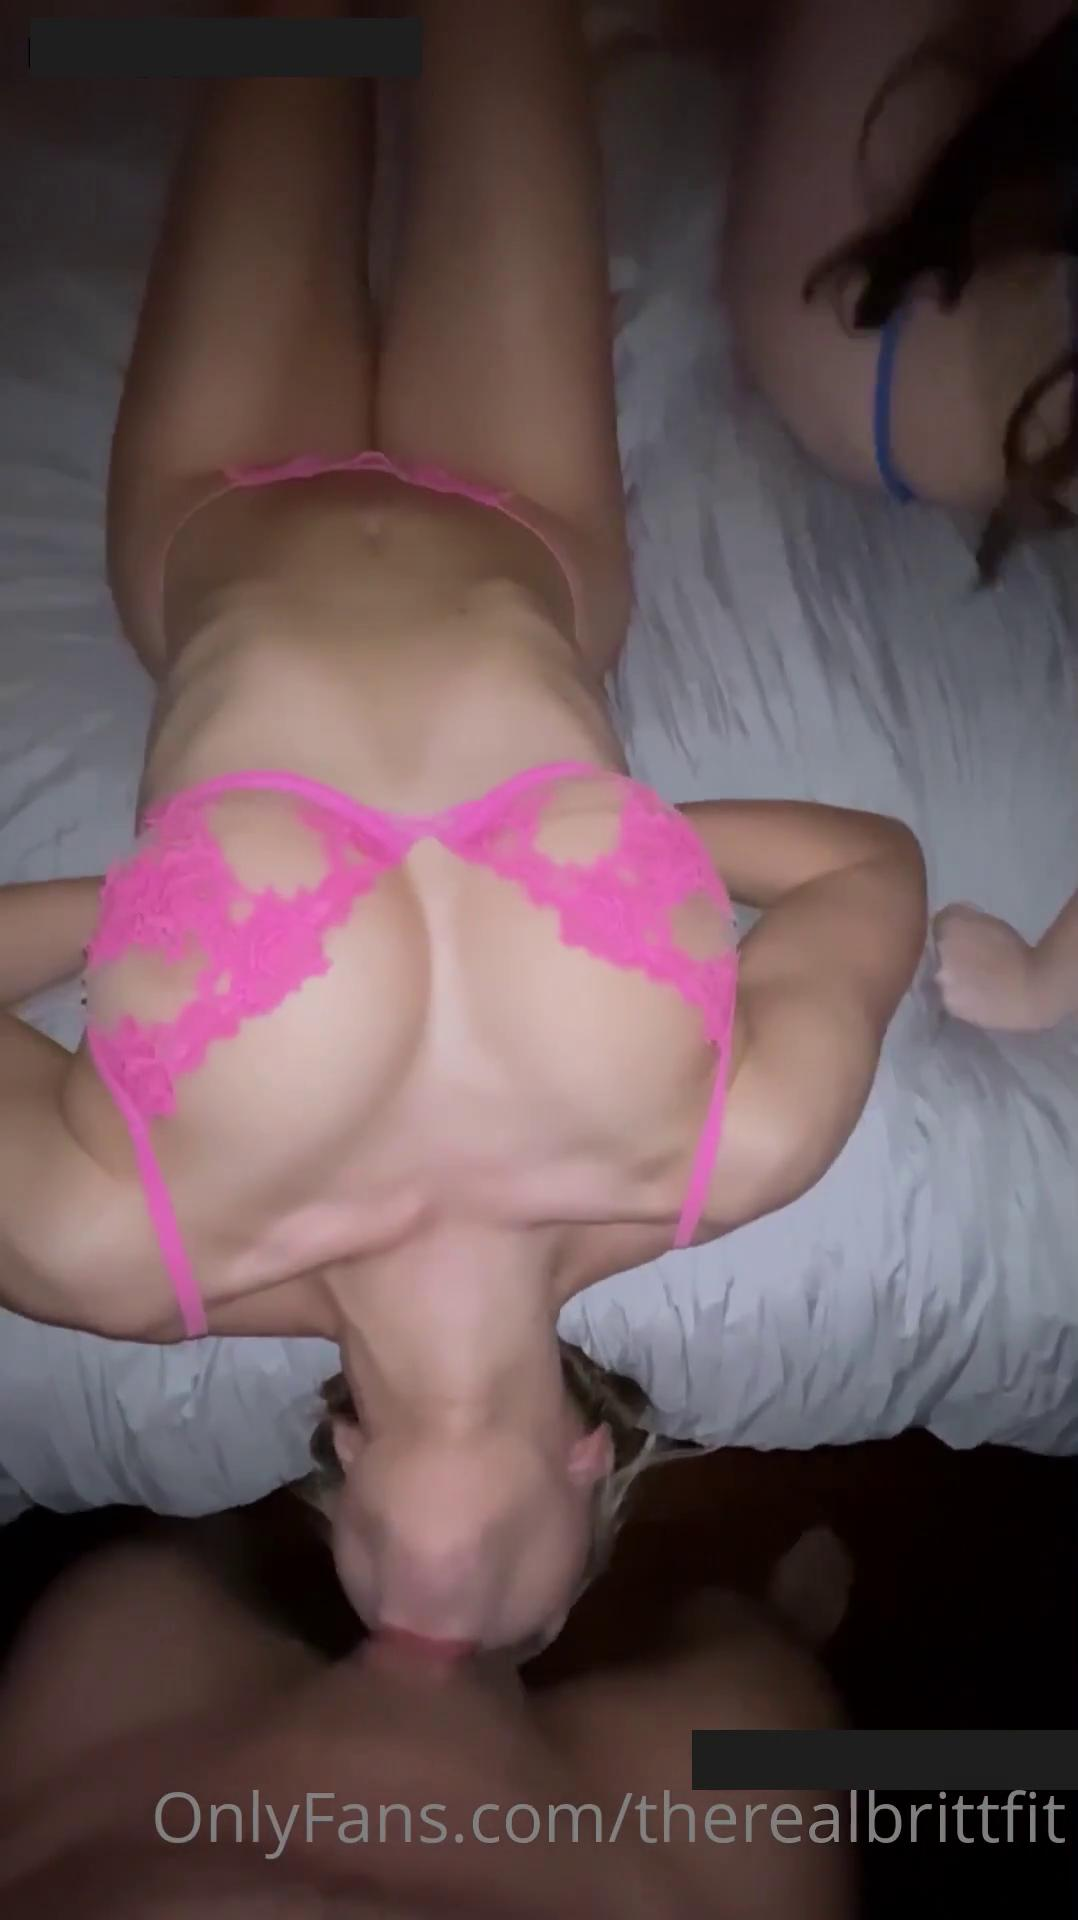 Therealbrittfit Threesome Sextape Onlyfans Porn Video Leaked 0007